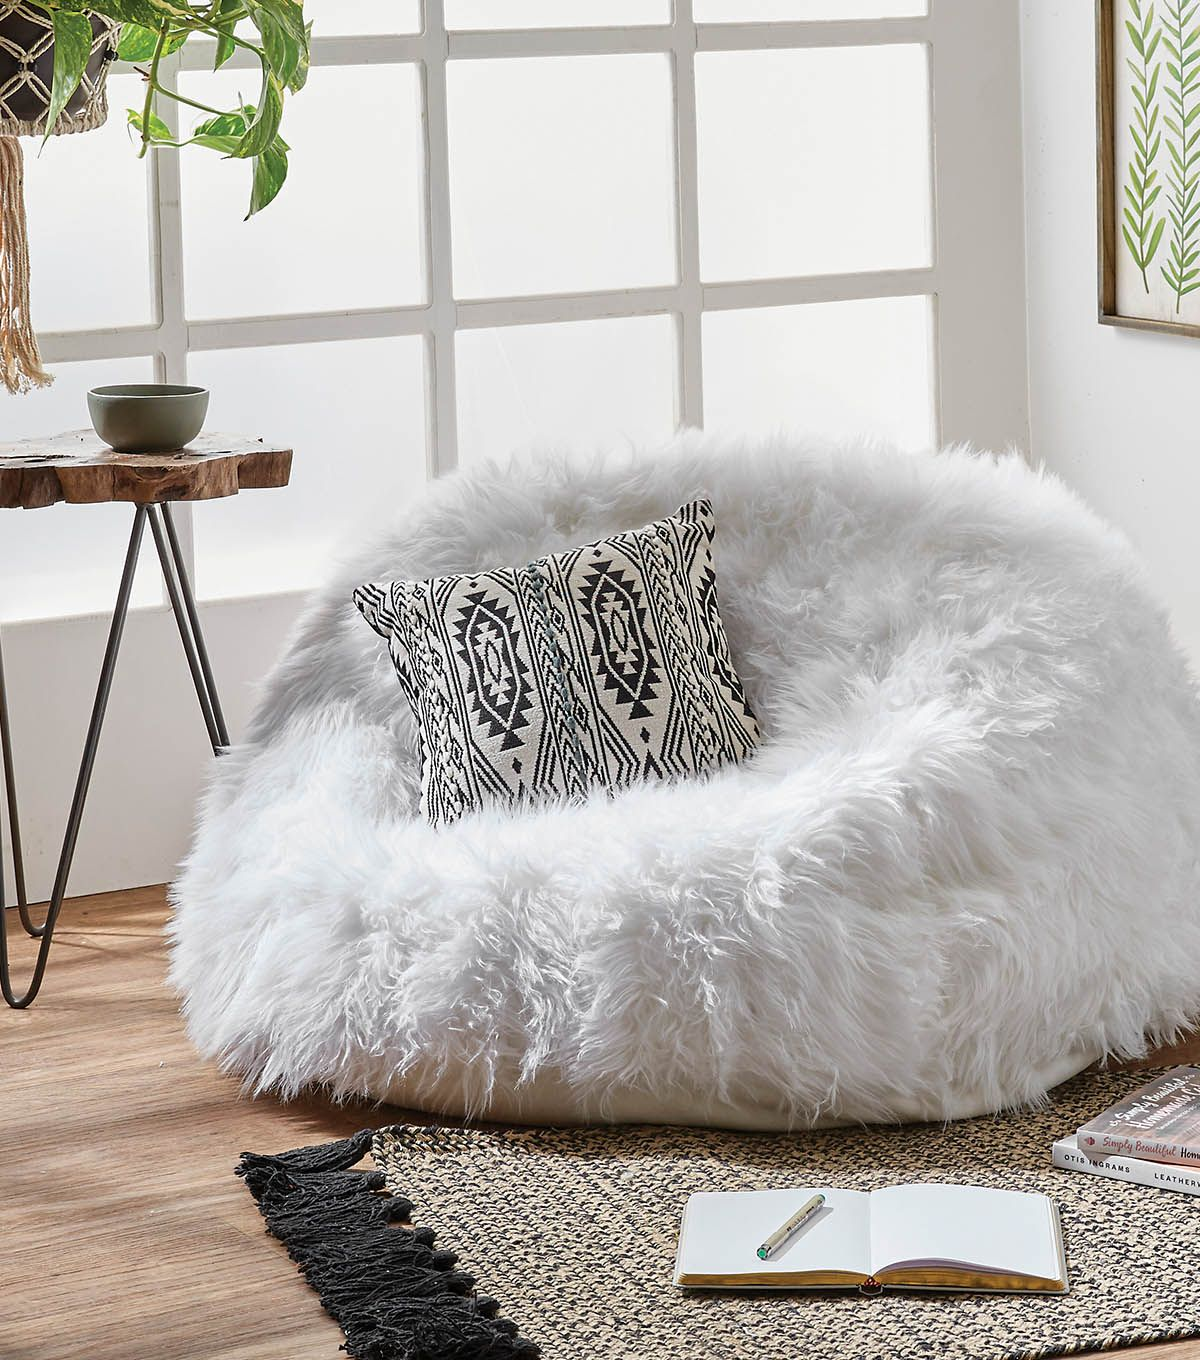 Fantastic How To Make A Faux Fur Bean Bag Chair Directions In 2019 Machost Co Dining Chair Design Ideas Machostcouk